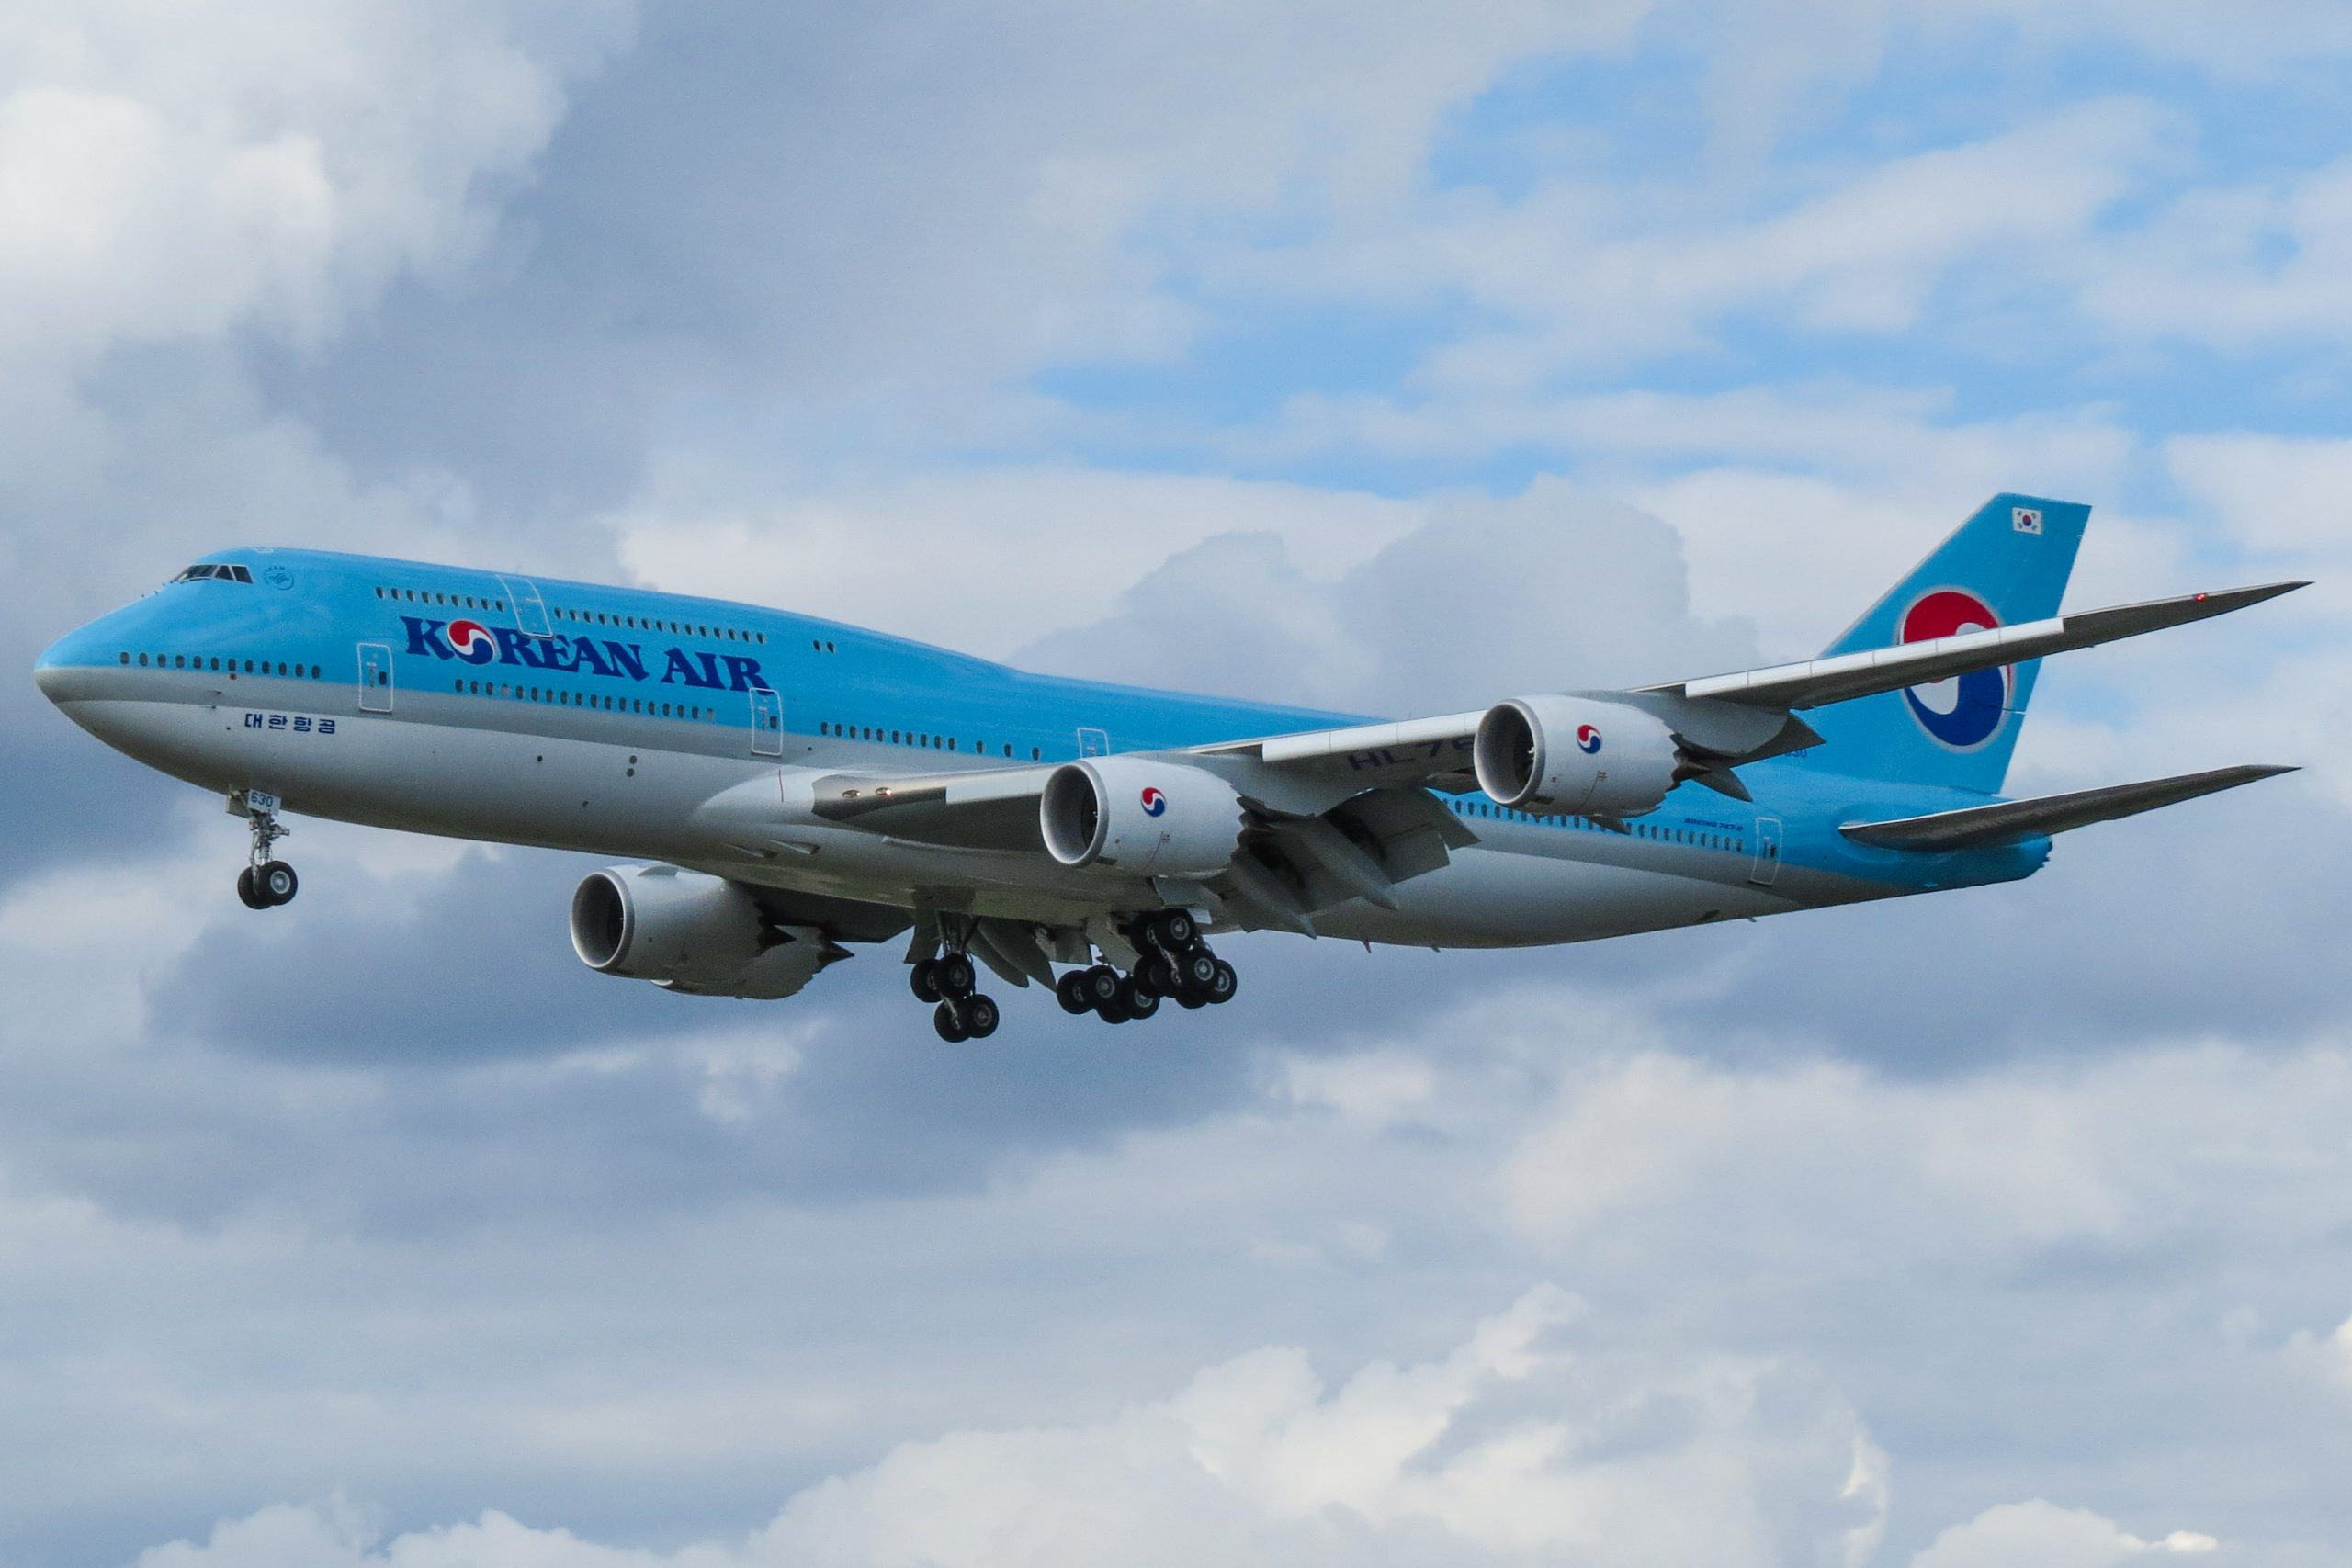 Korean Air To Sell In-Flight Meal Service & Duty Free Businesses For $840 Million